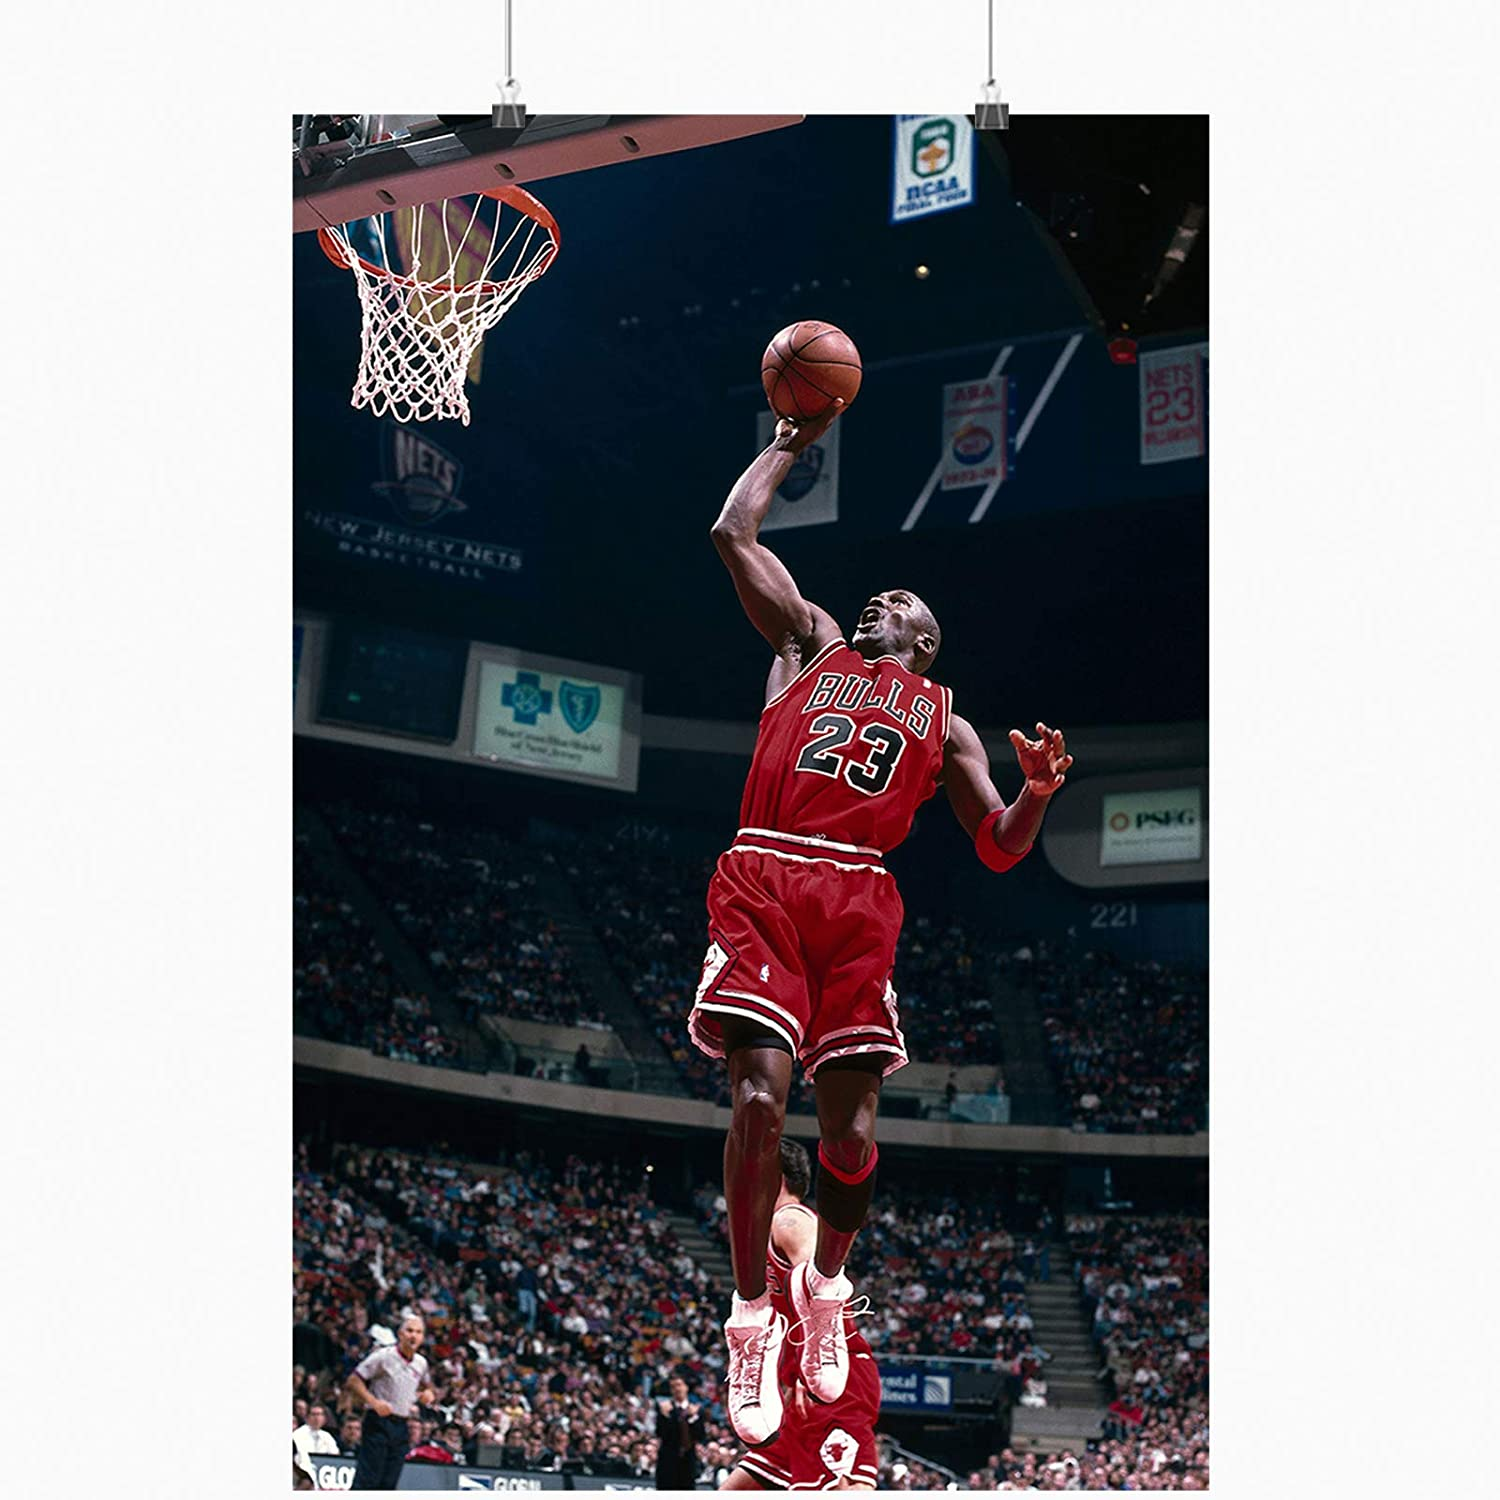 Michael Jordan Bulles Posters 18 x 24 inches Basketball Star Inspirational Posters for Rooms Offices Dorms Homes Wall Decor Posters Unframed